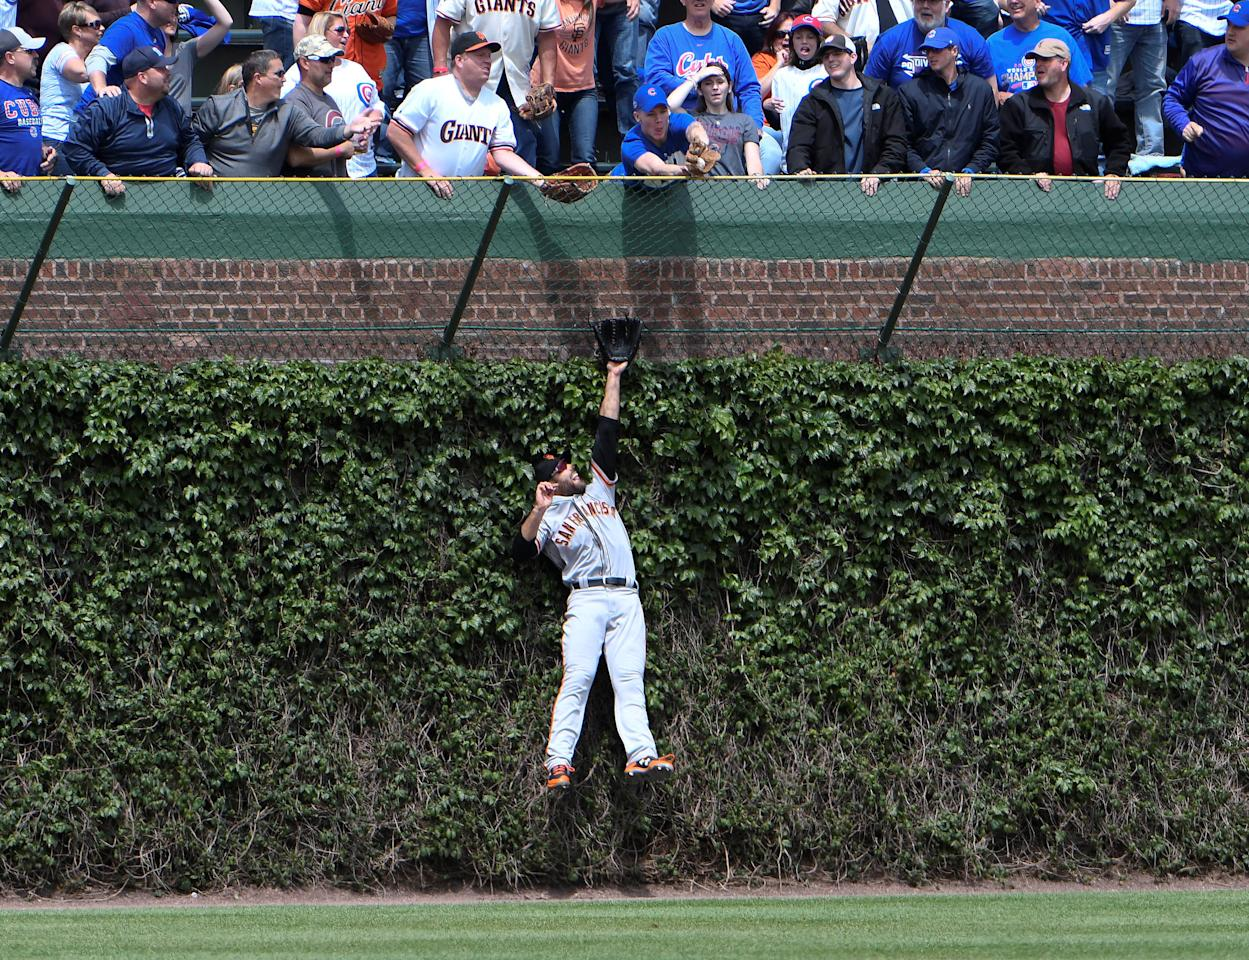 May 25, 2017; Chicago, IL, USA; San Francisco Giants left fielder Mac Williamson (51) cannot catch a home run hit by Chicago Cubs third baseman Kris Bryant (not pictured) during the first inning at Wrigley Field. Mandatory Credit: David Banks-USA TODAY Sports     TPX IMAGES OF THE DAY